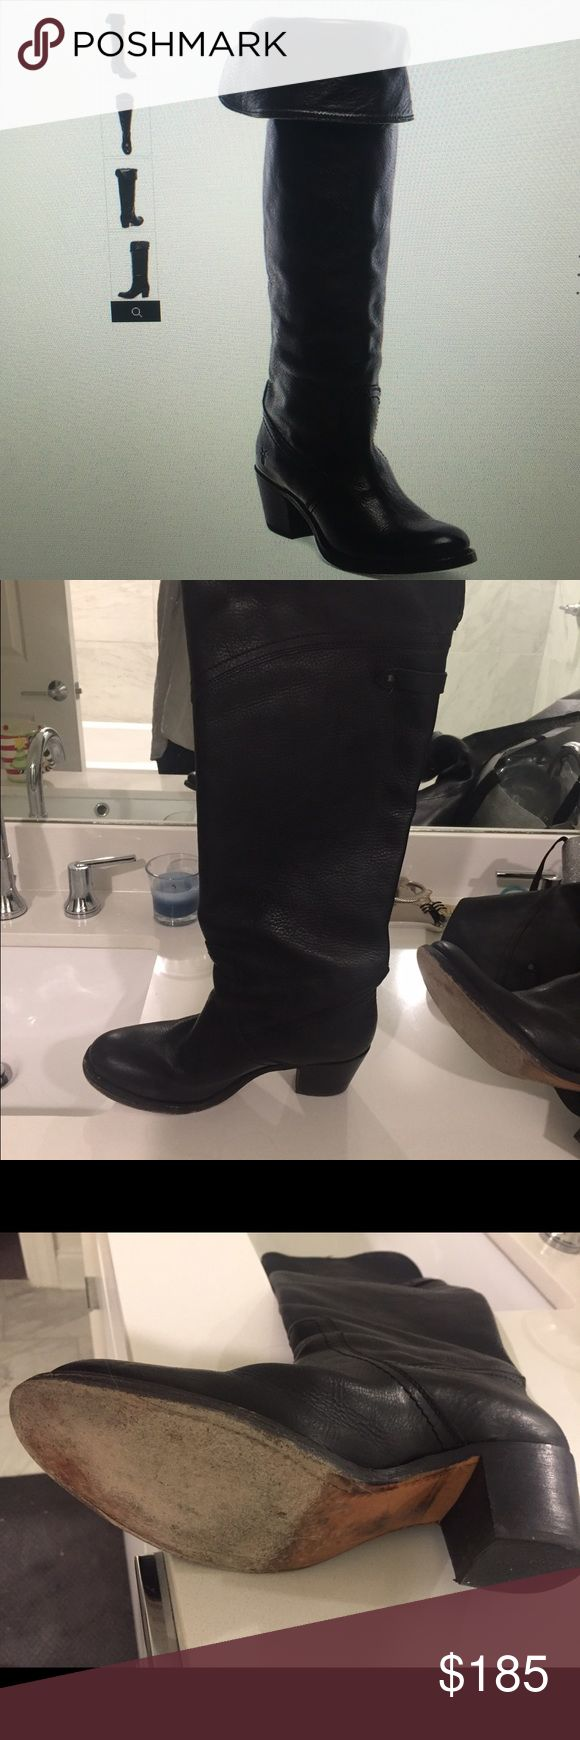 Frye Over The Knee Boots Black Frye over the knee boot. Jane tall cuff size 8 great condition! Frye Shoes Heeled Boots